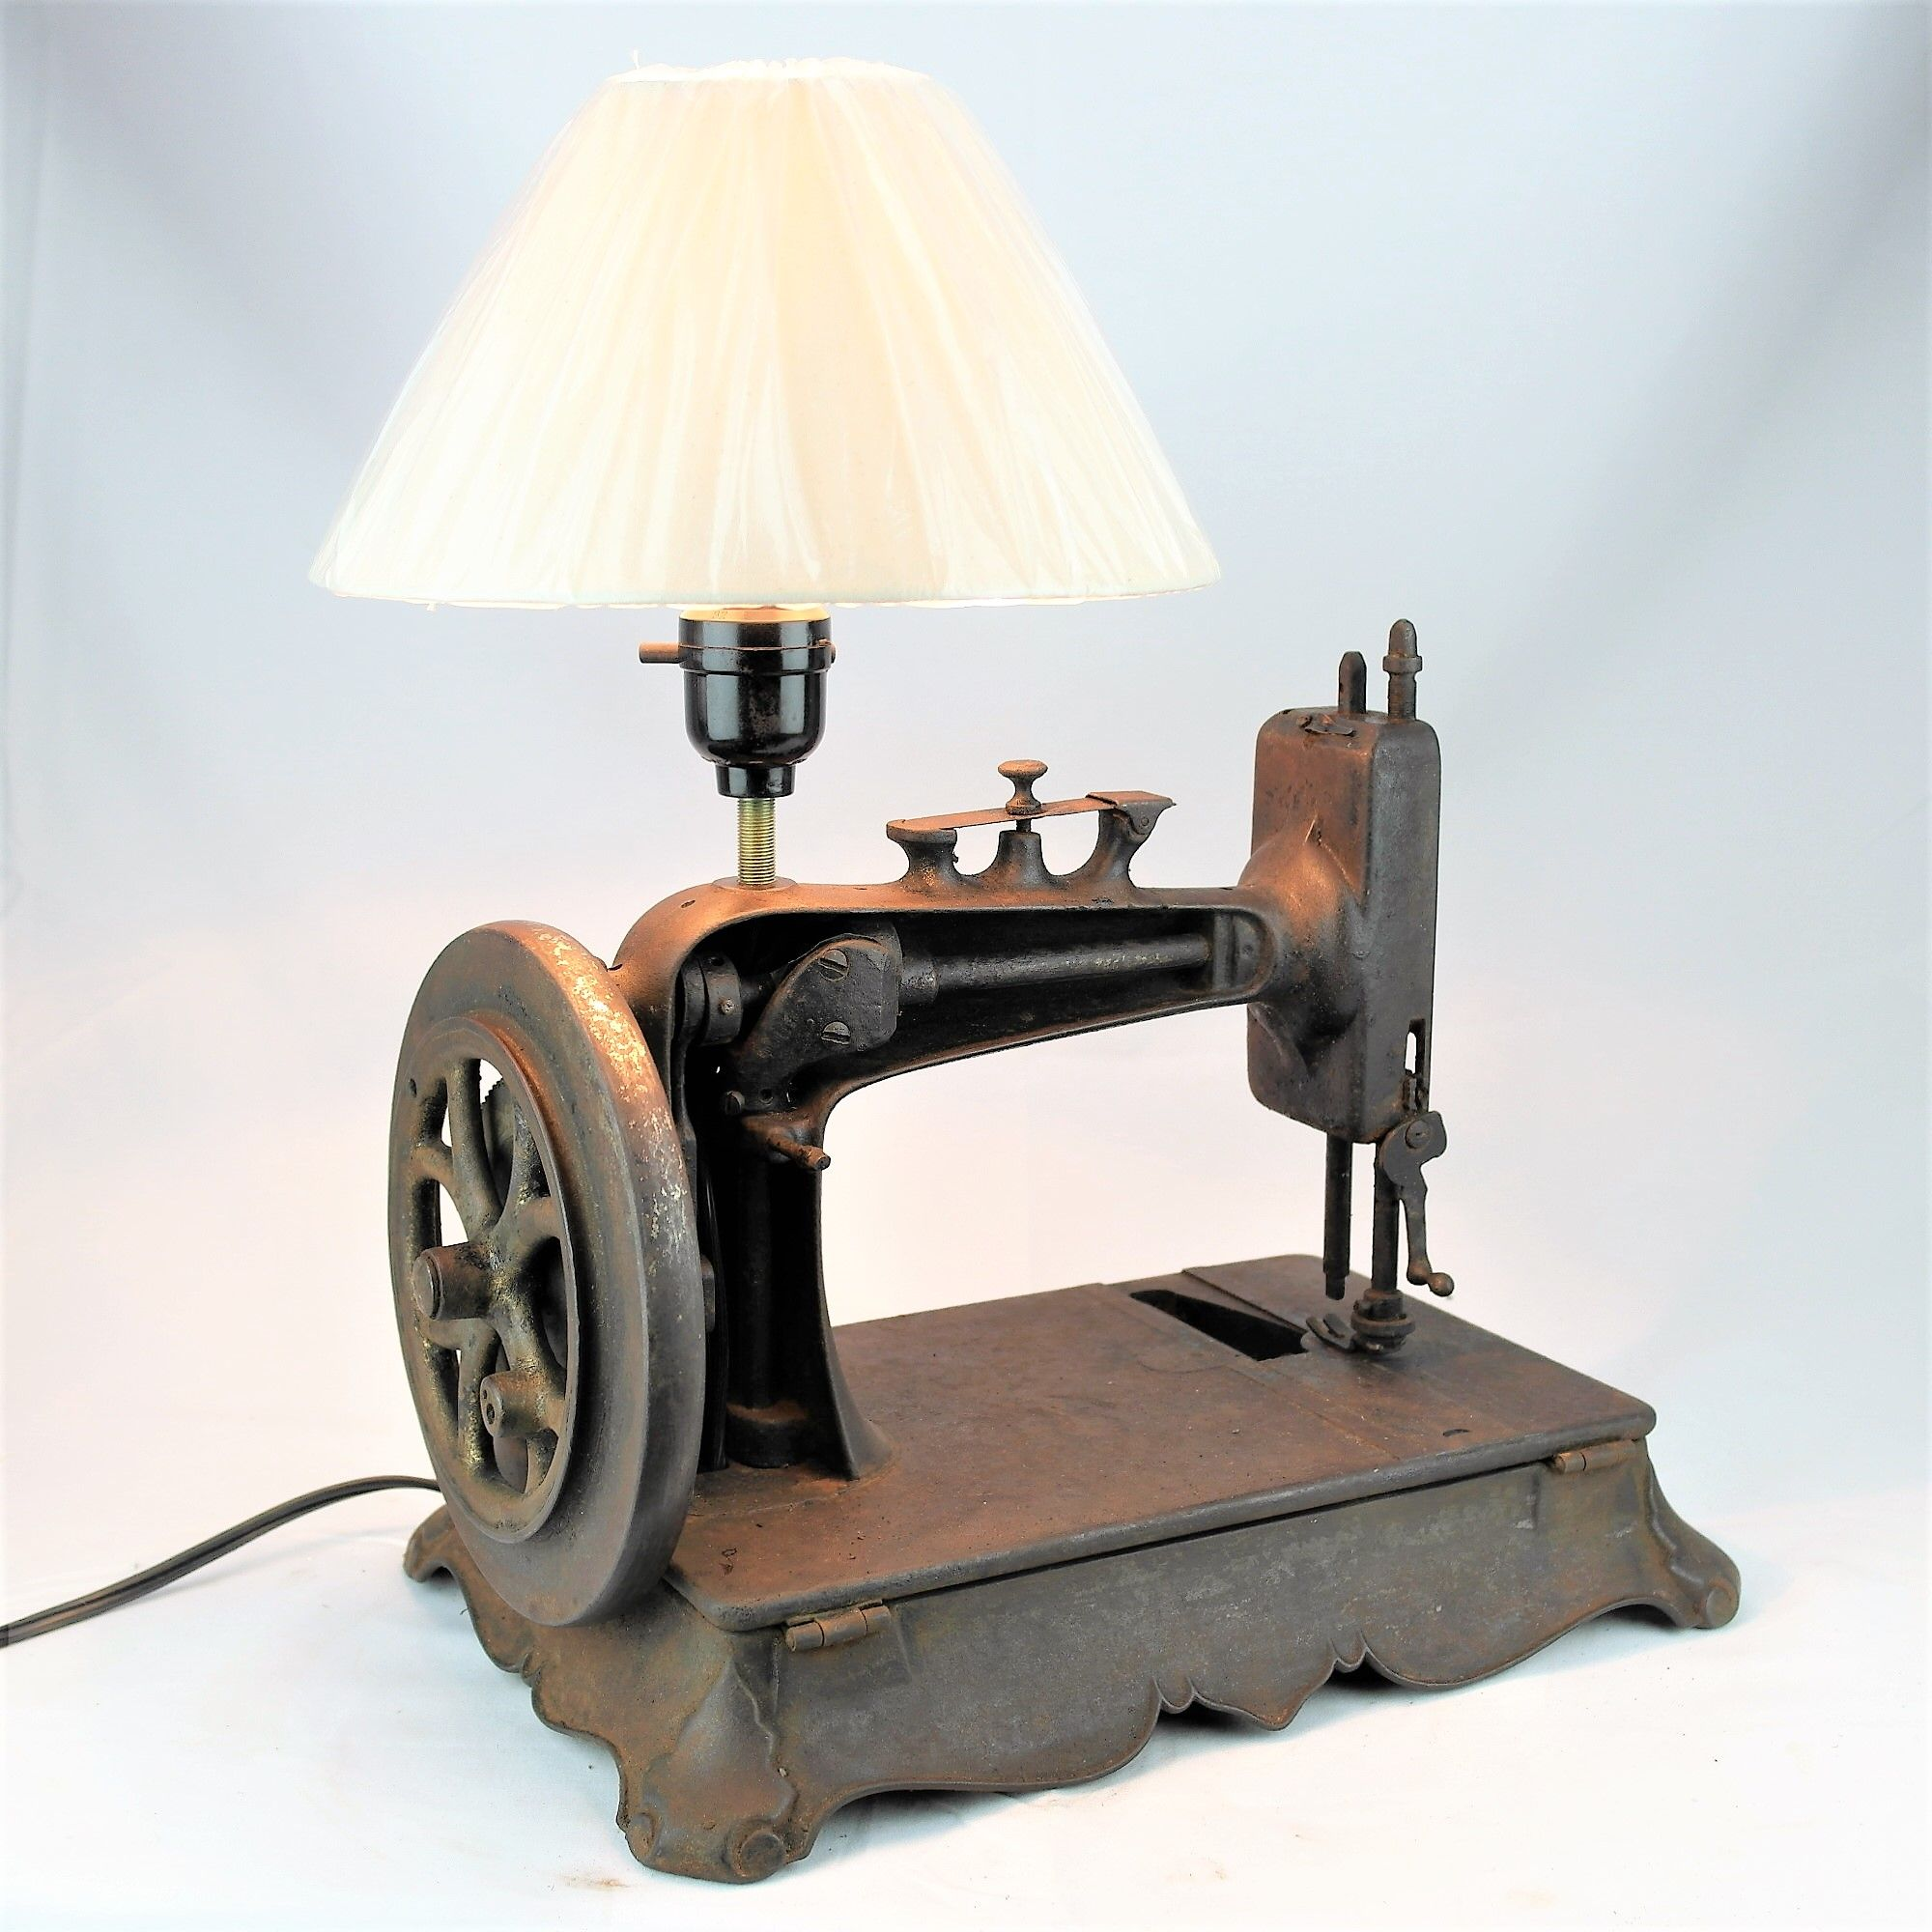 Maquinas De Coser Antiguas Decoradas Lámpara Antigua Máquina Coser Sewing Machine Vintage Lamp